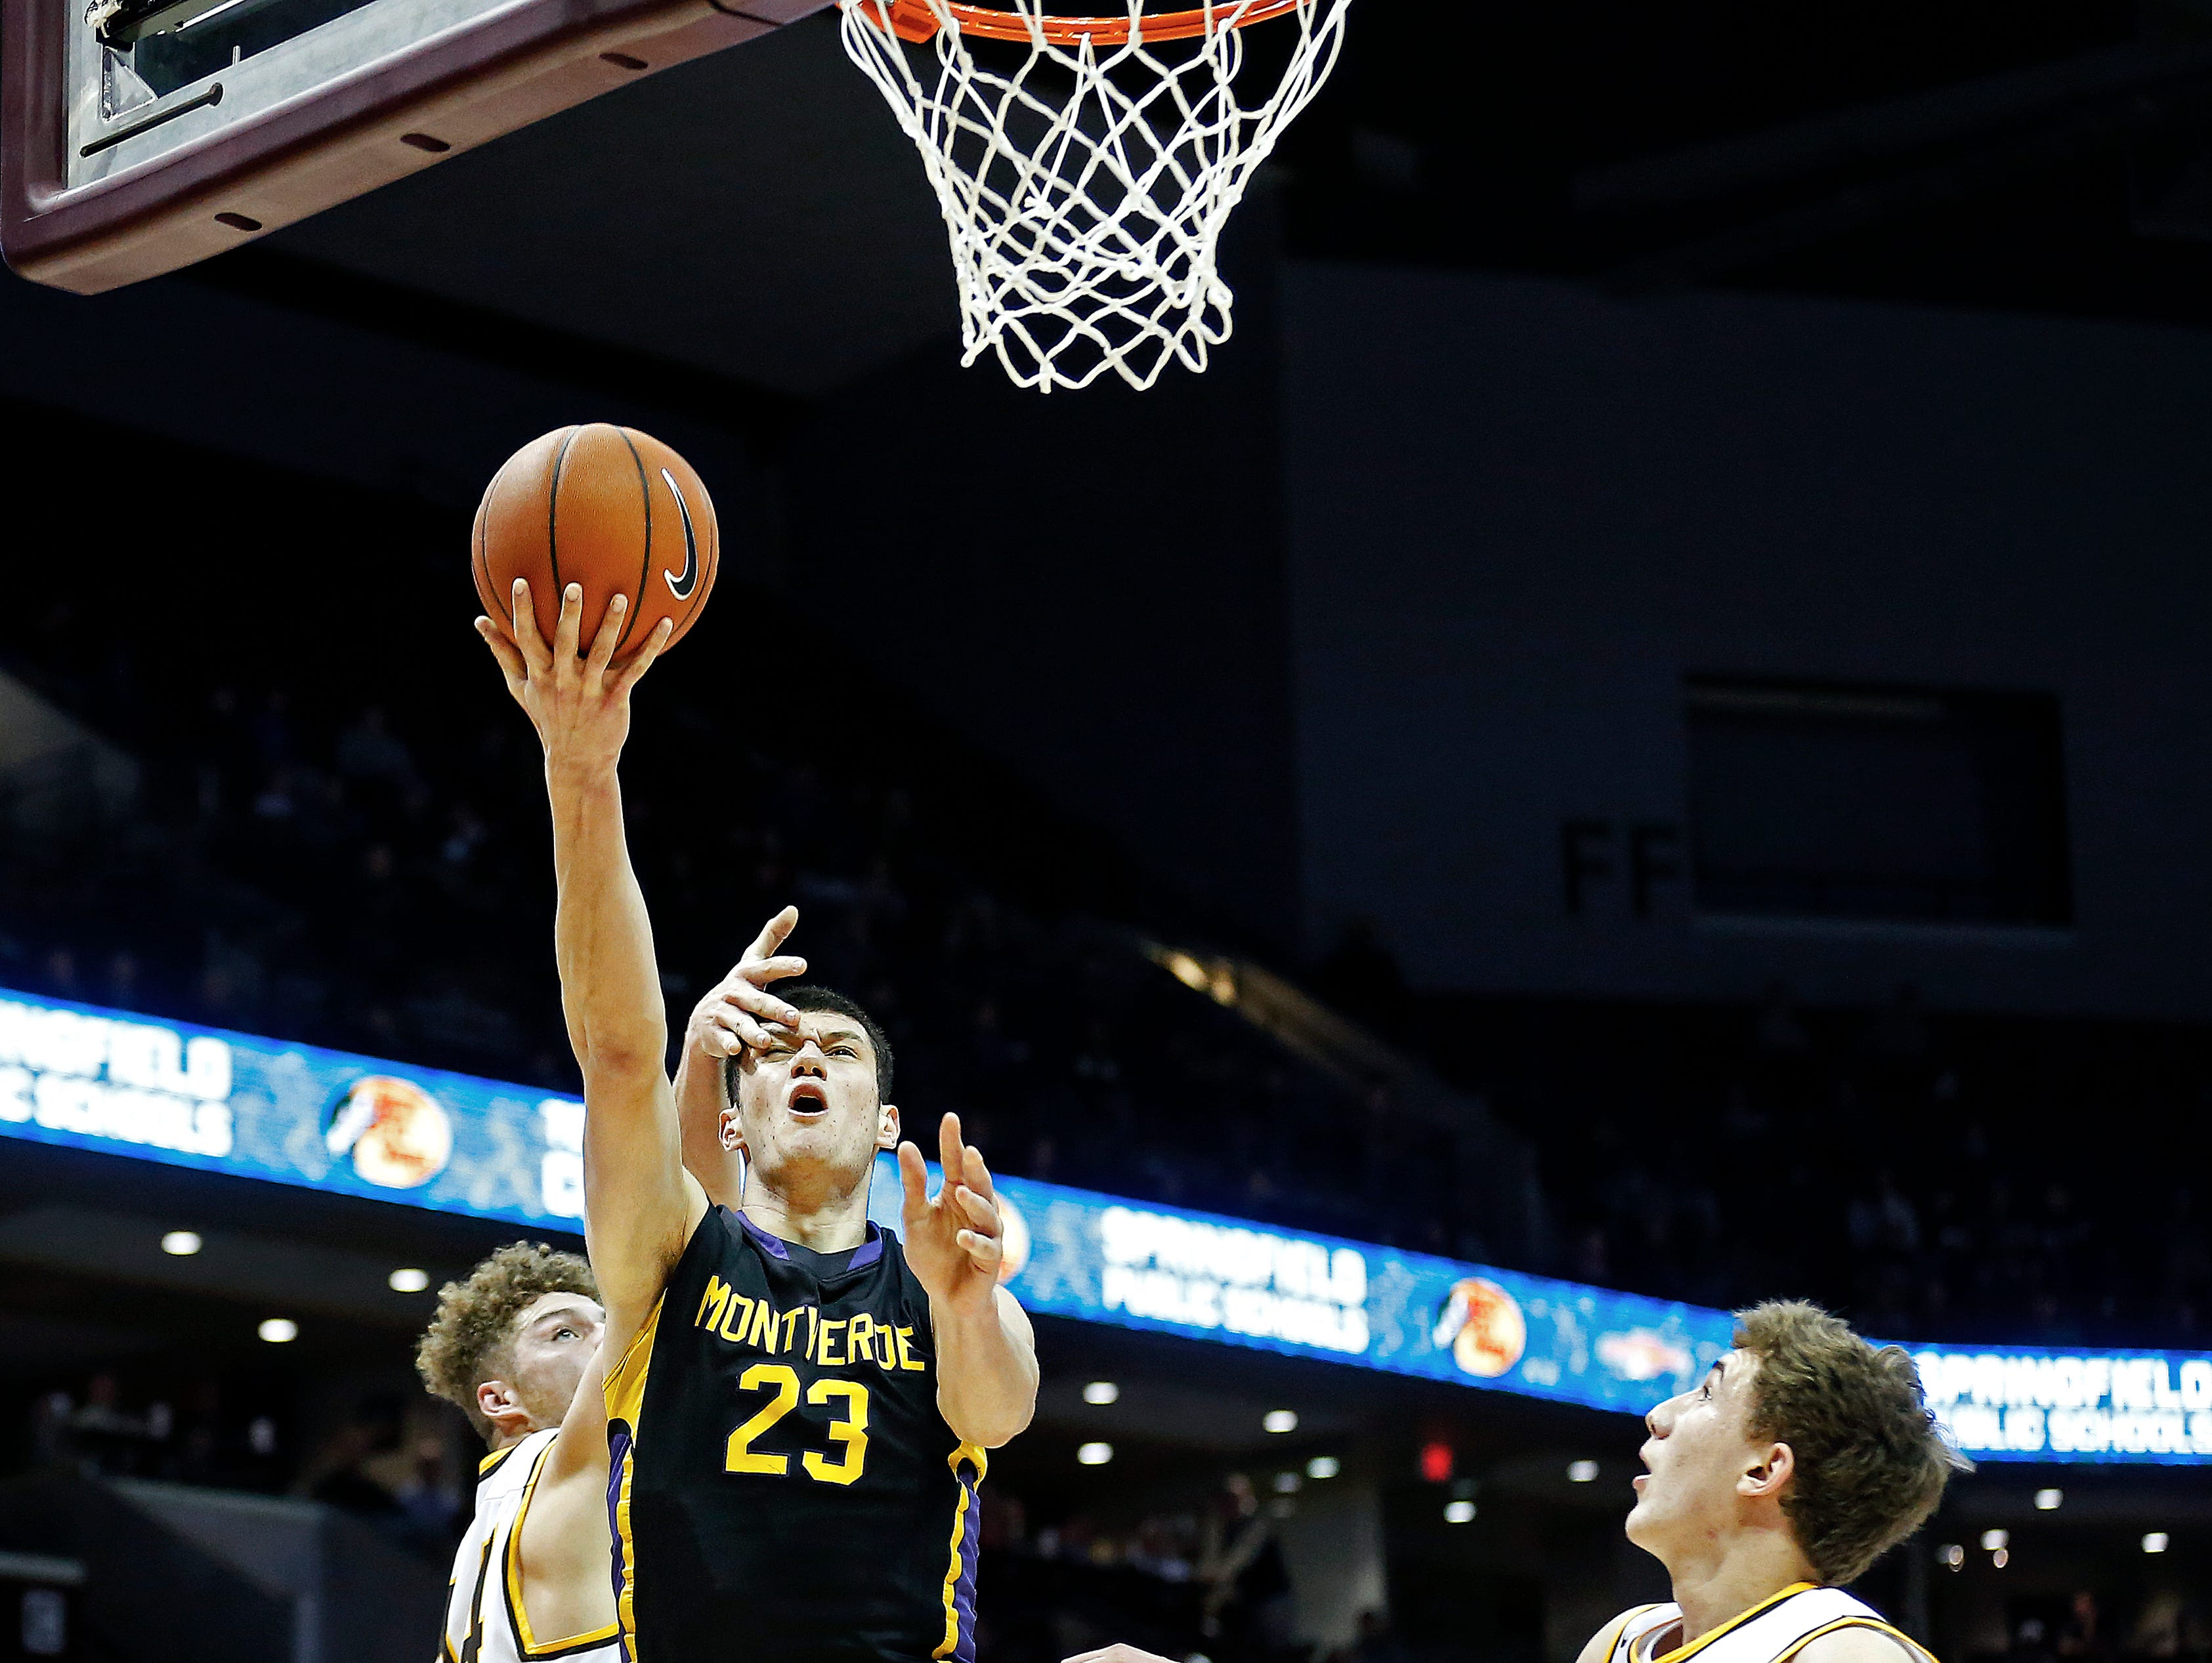 Montverde Academy Eagles (Montverde, Fla. forward Sandro Mamukelashvili (23) has a foul committed on him during second quarter action of the 2017 Bass Pro Tournament of Champions high school basketball game between the Kickapoo High School Chiefs (Springfield, Mo.) and the Montverde Academy Eagles (Montverde, Fla.) at JQH Arena in Springfield, Mo. on Jan. 12, 2017.